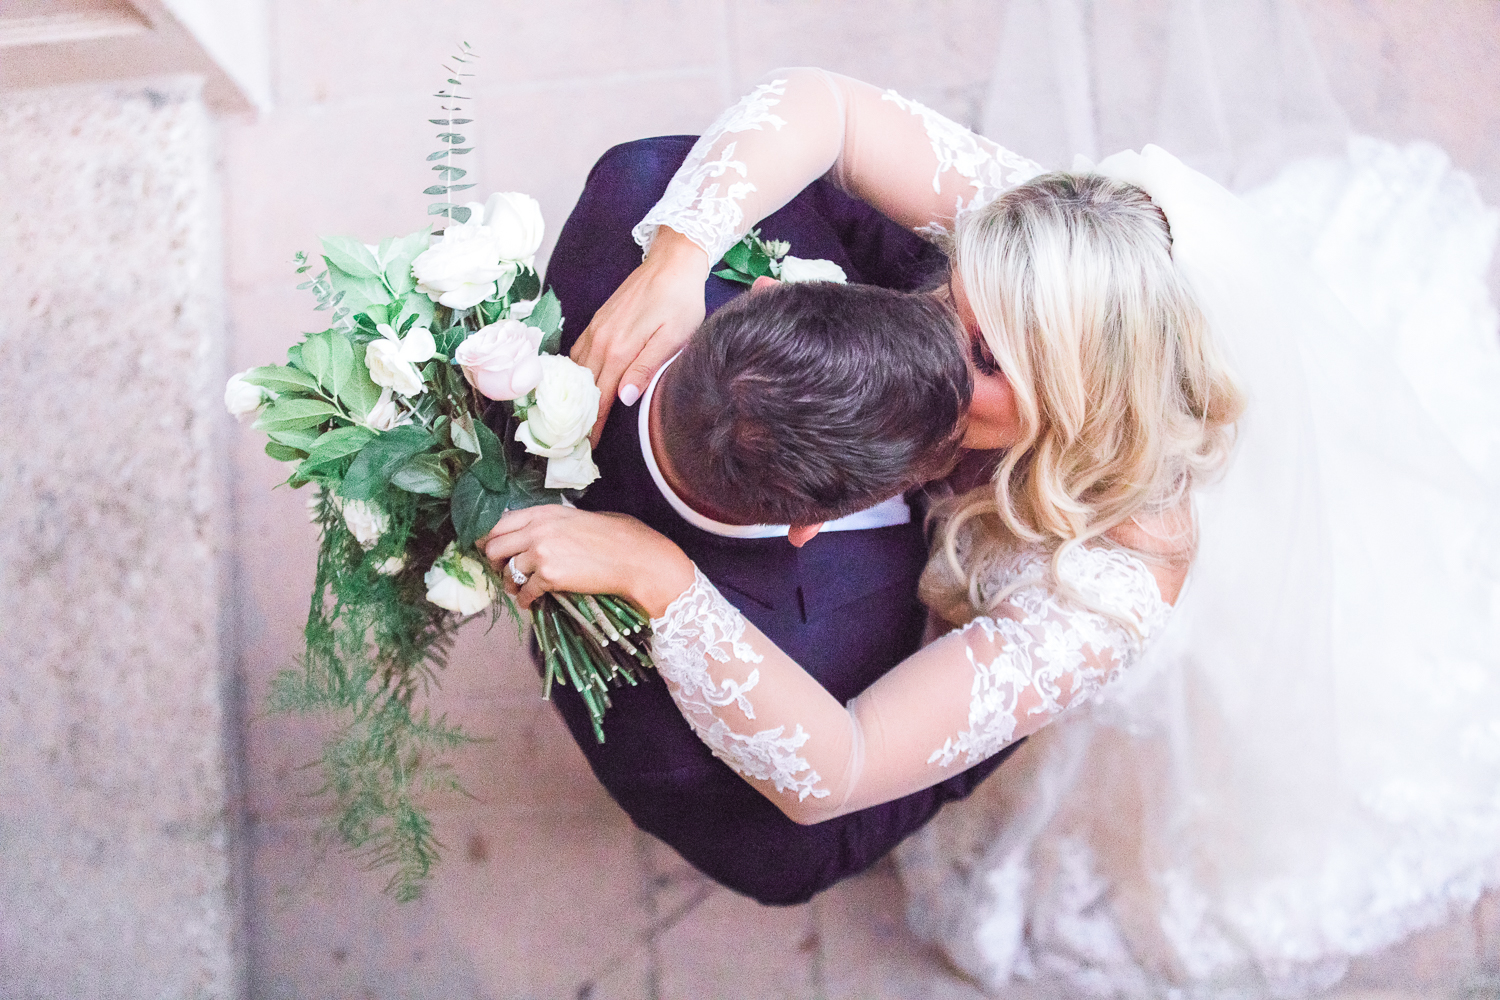 unique wedding picture ideas for bride and groom in epping forest yacht club, jacksonville fl